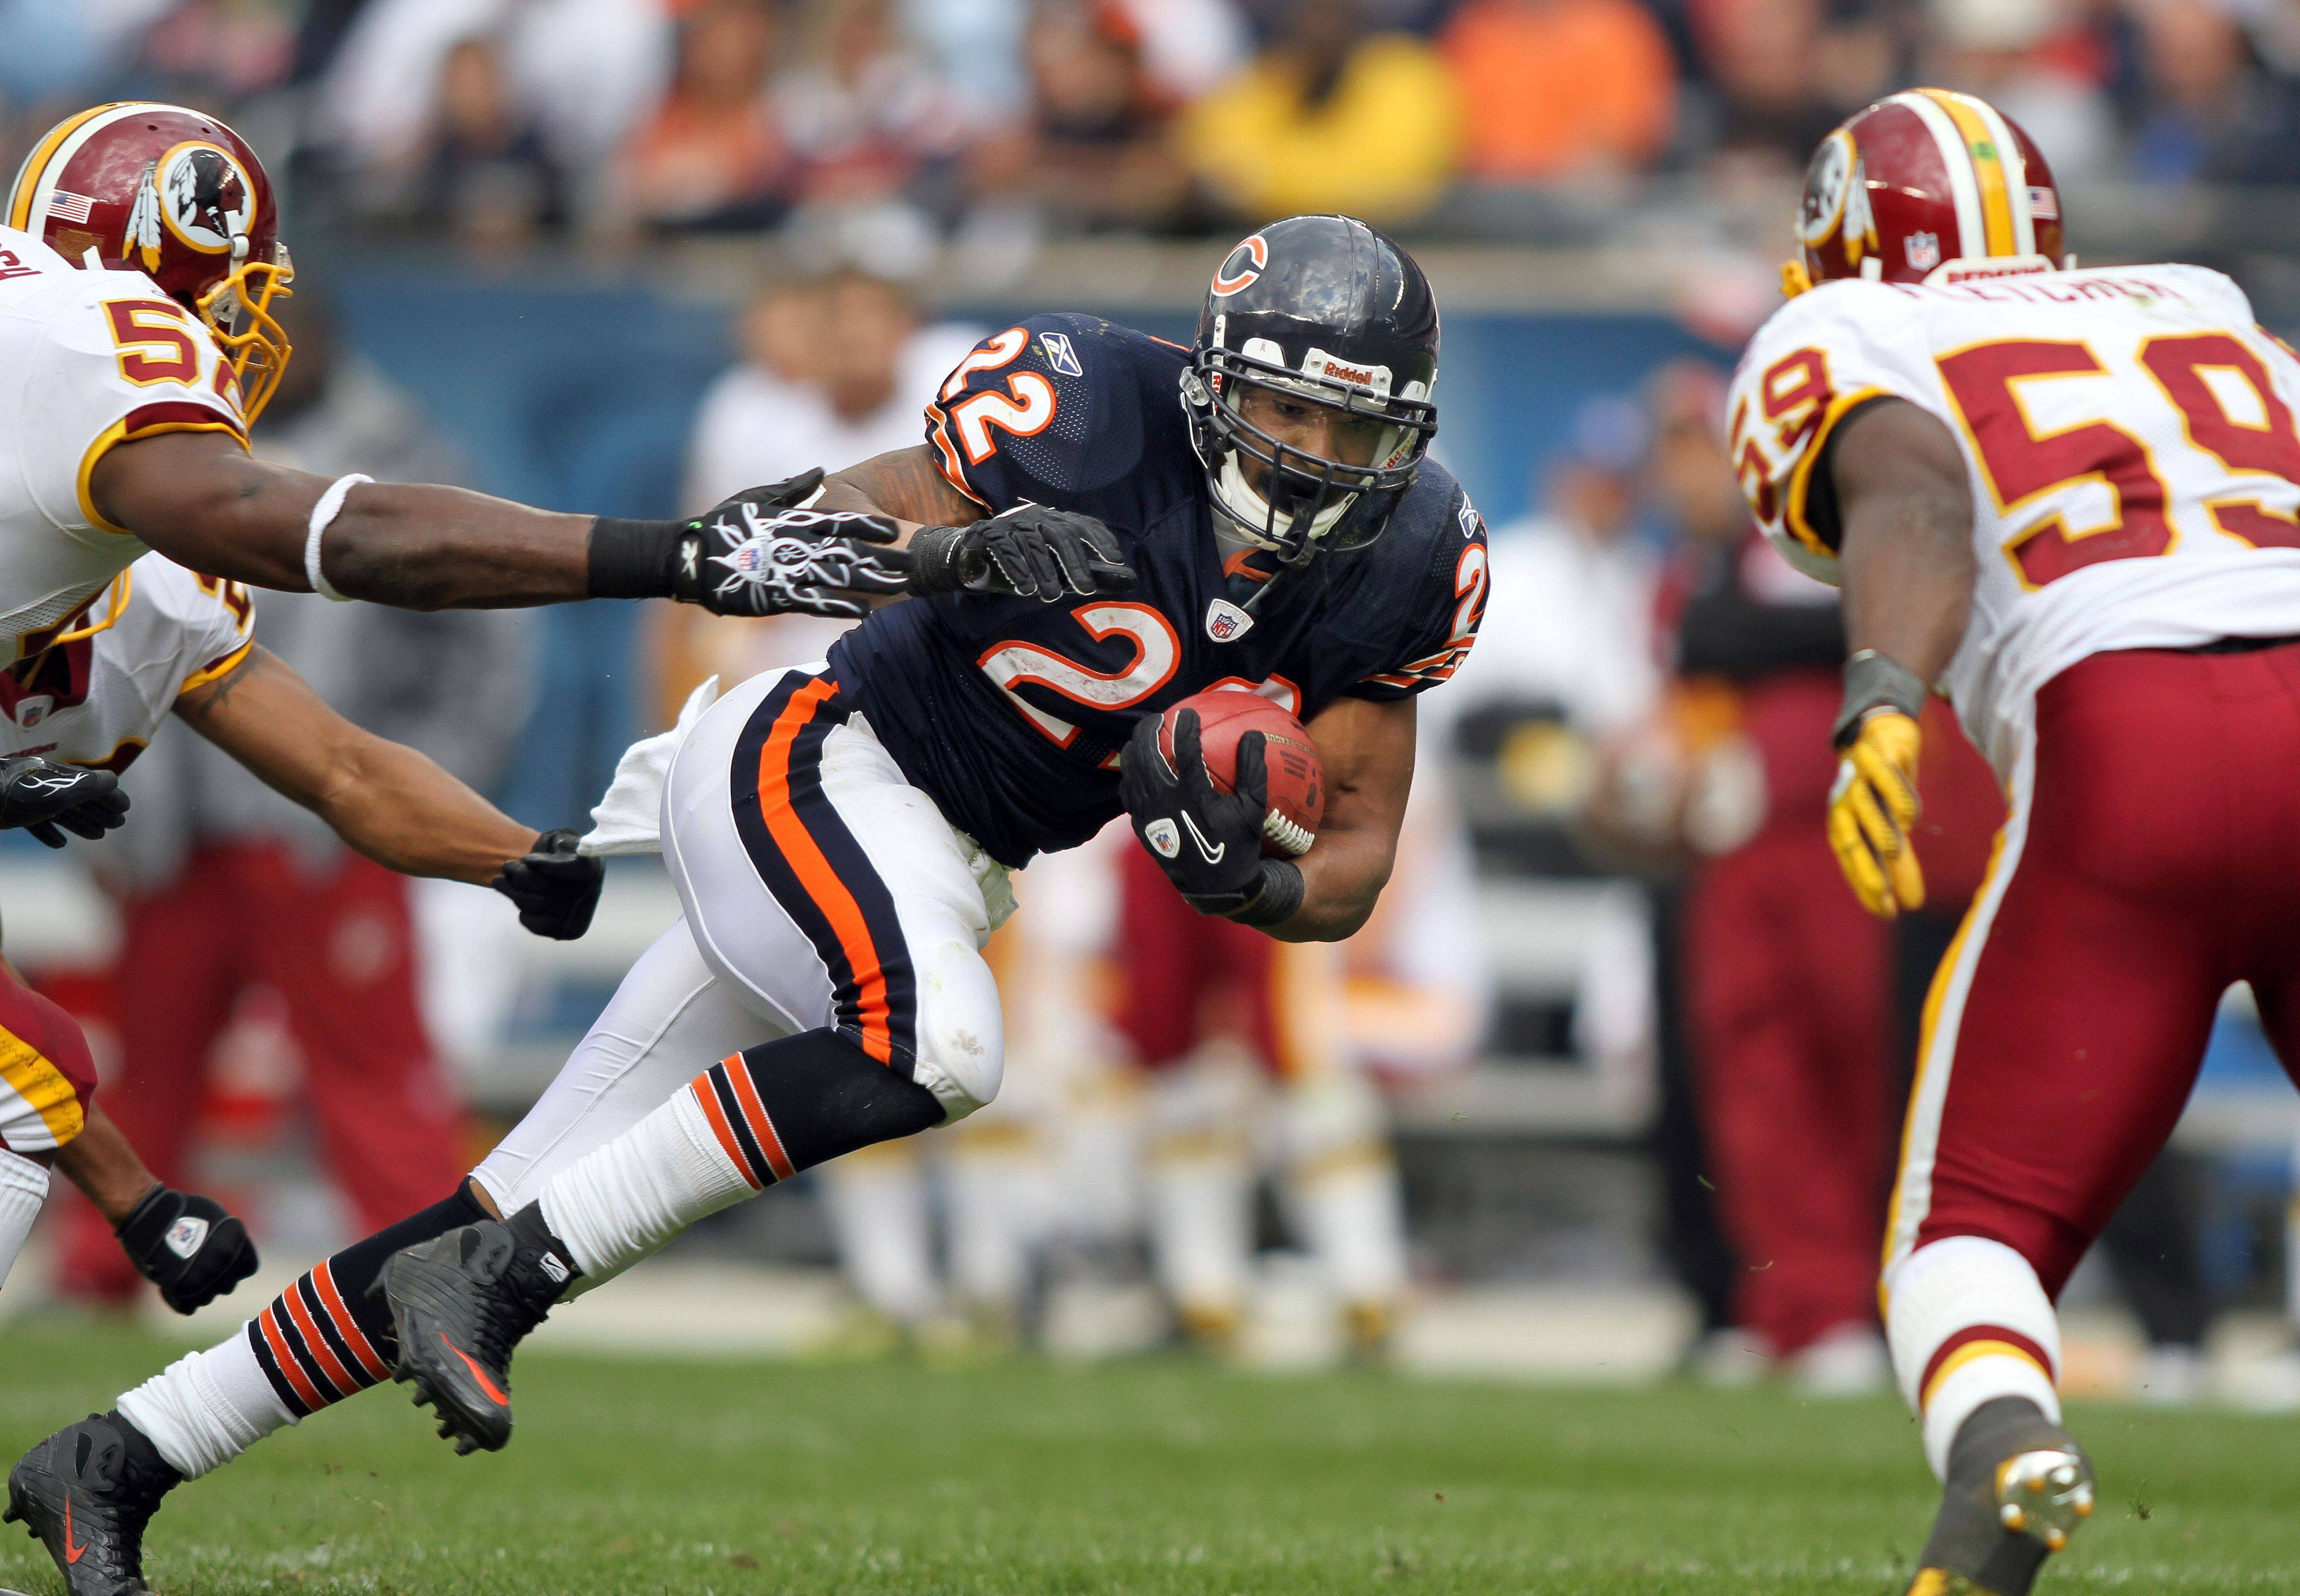 Chicago Bears running back Matt Forte runs during the Bears' 14-17 loss to the Redskins.